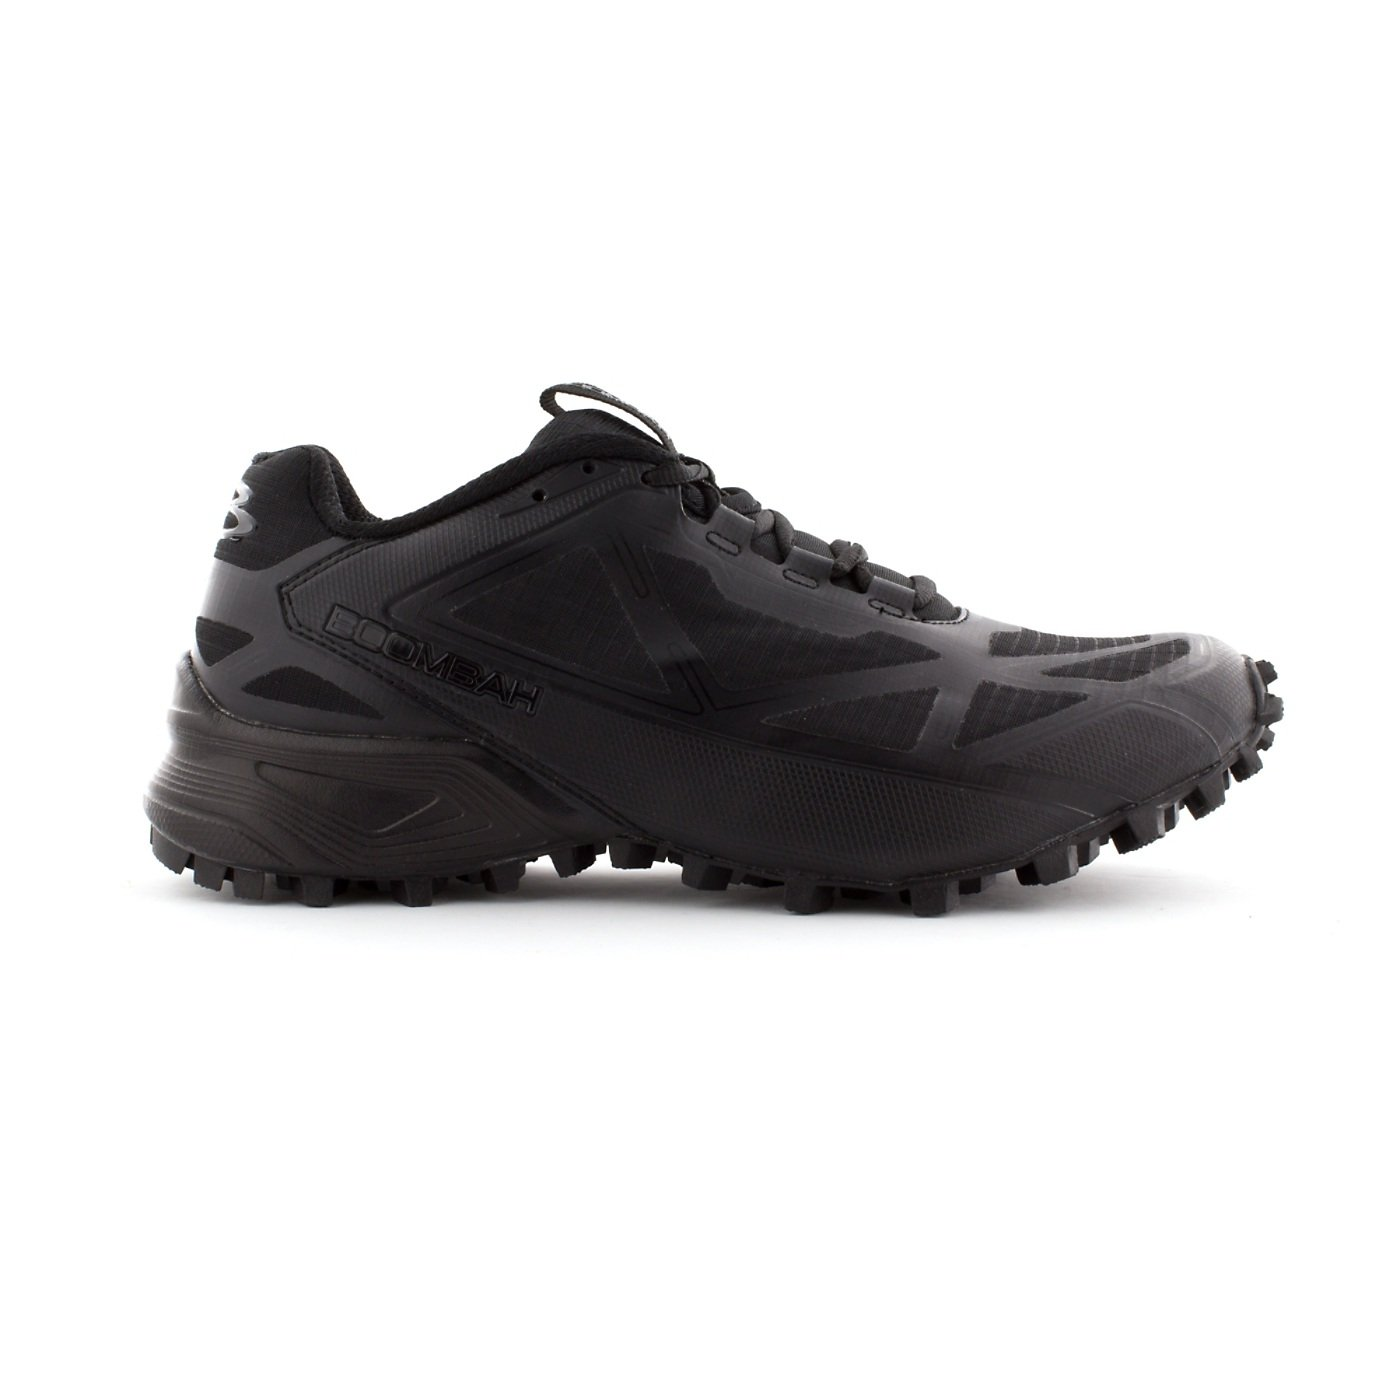 Boombah Men's Hellcat Trail Shoe - 14 Color Options - Multiple Sizes B073X6N9G9 13|Black